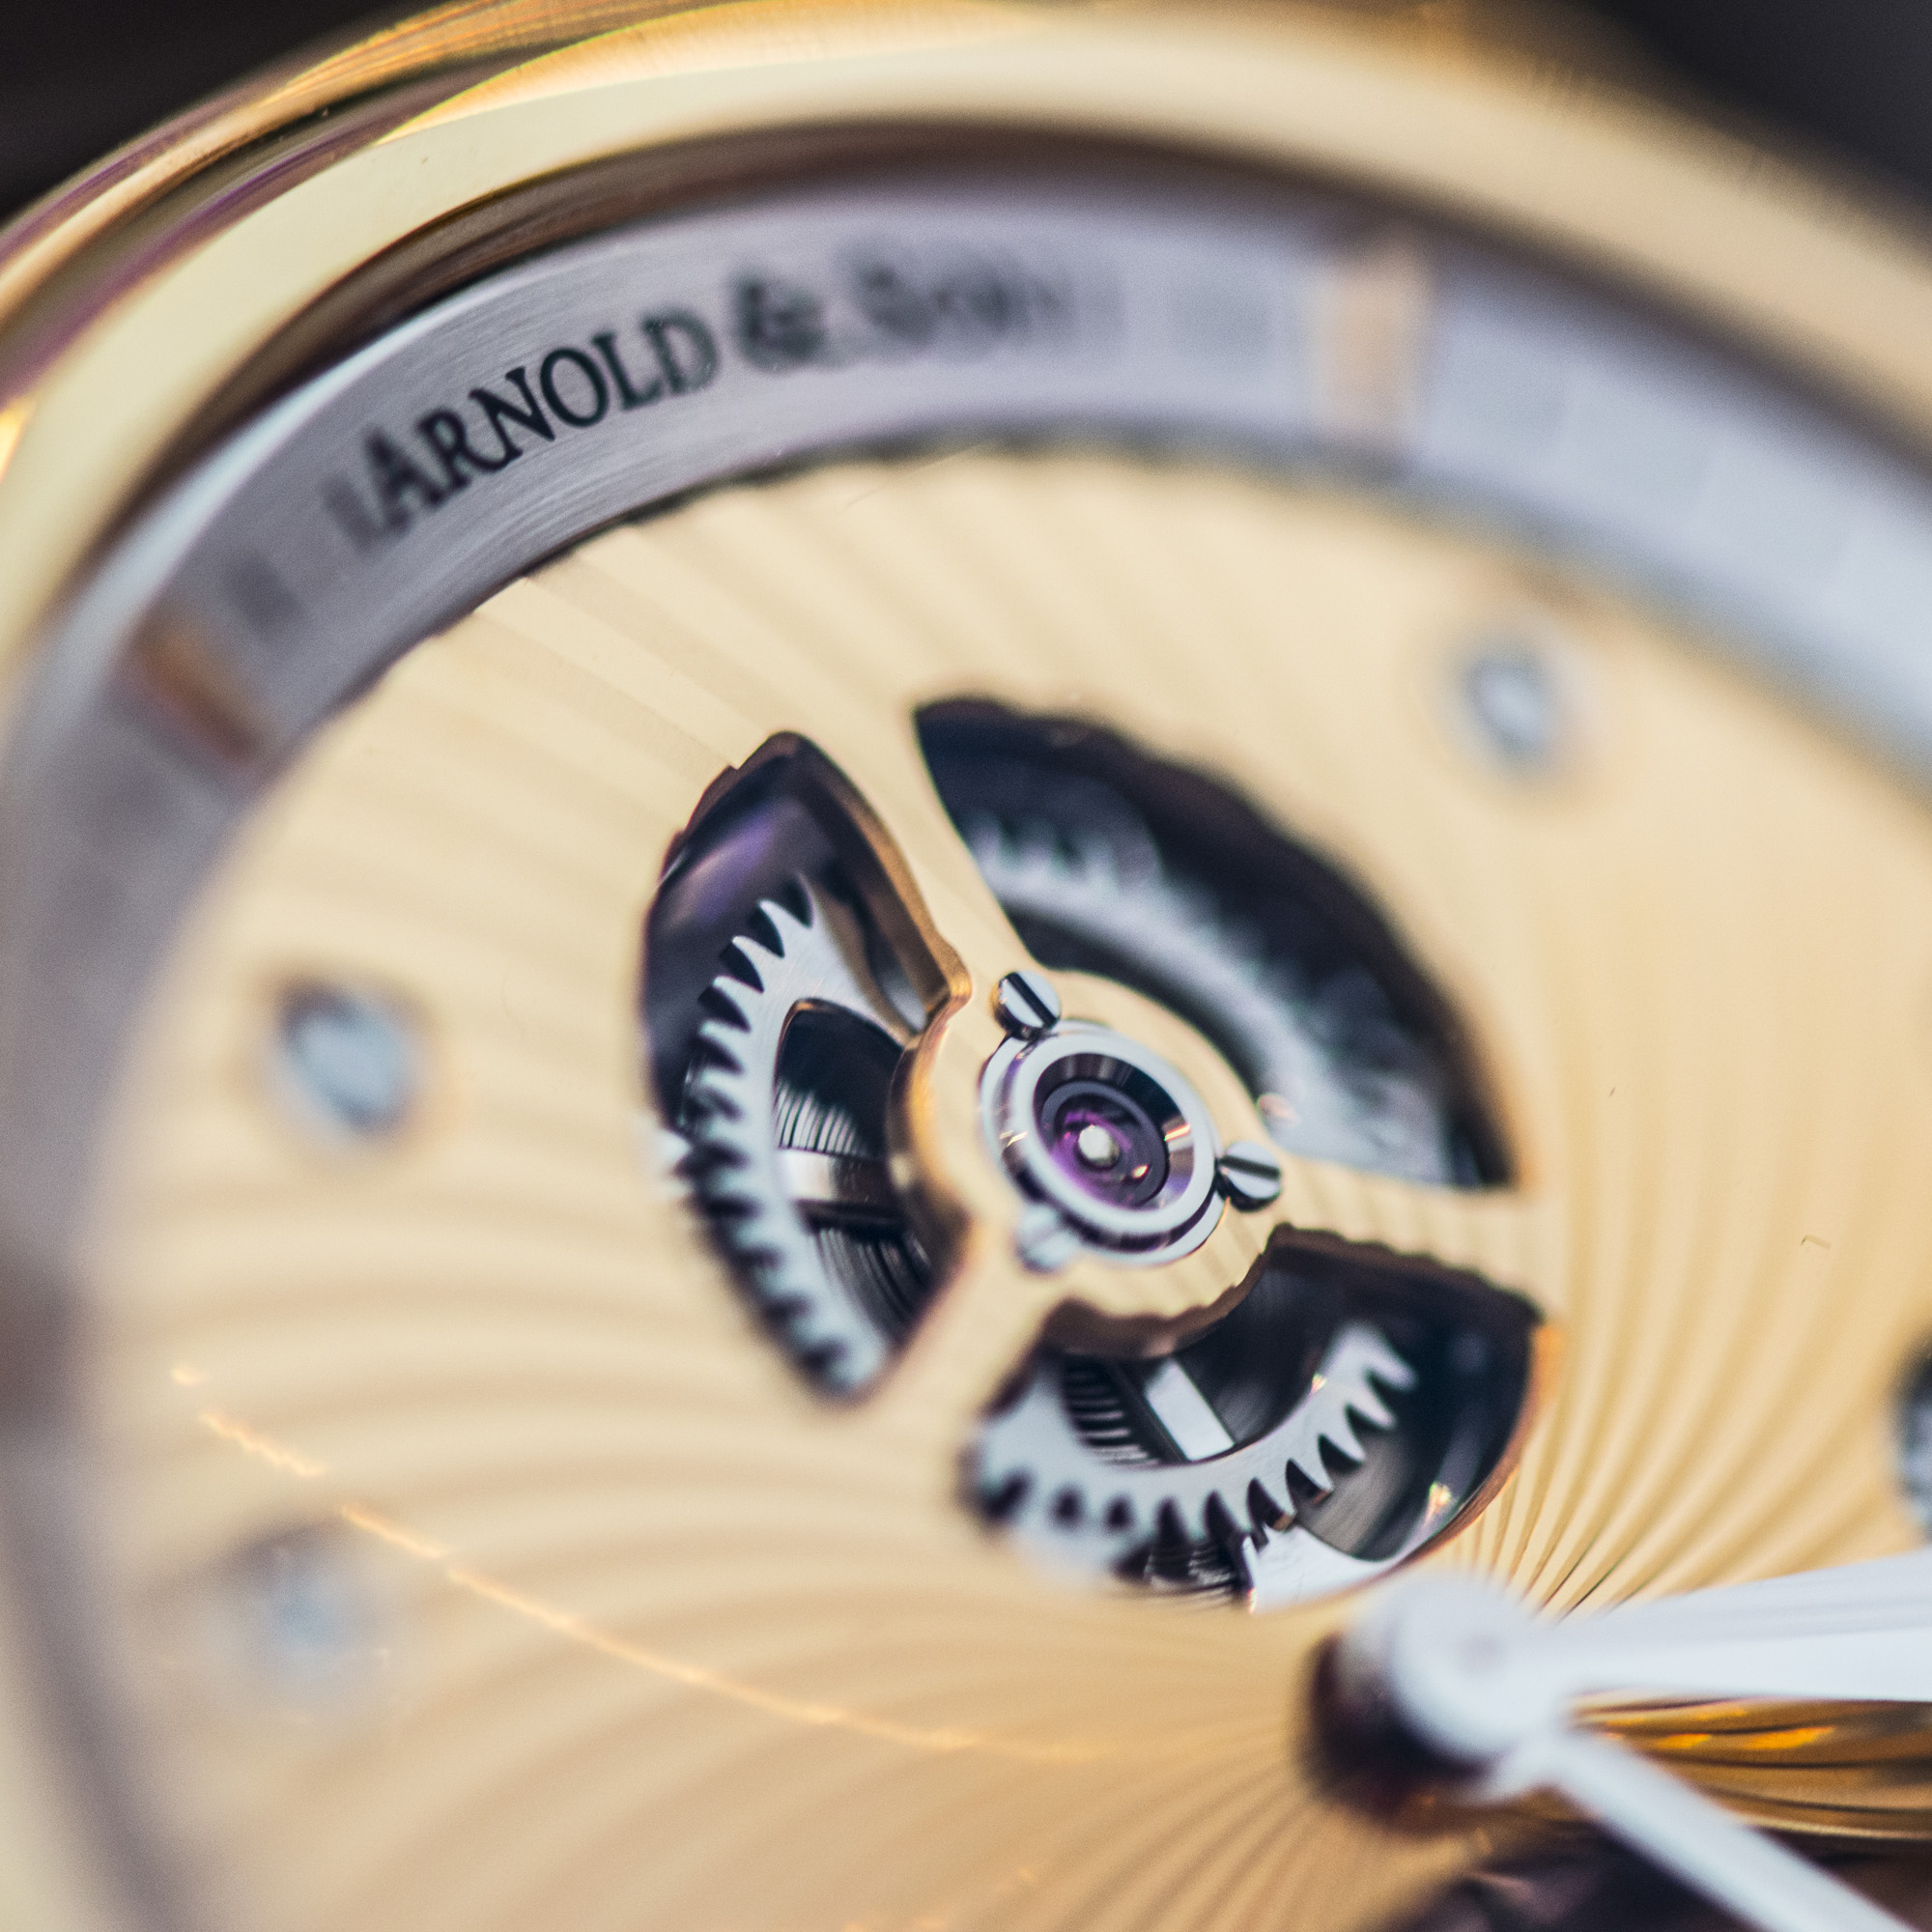 Arnold & Son TE8 - Closeup